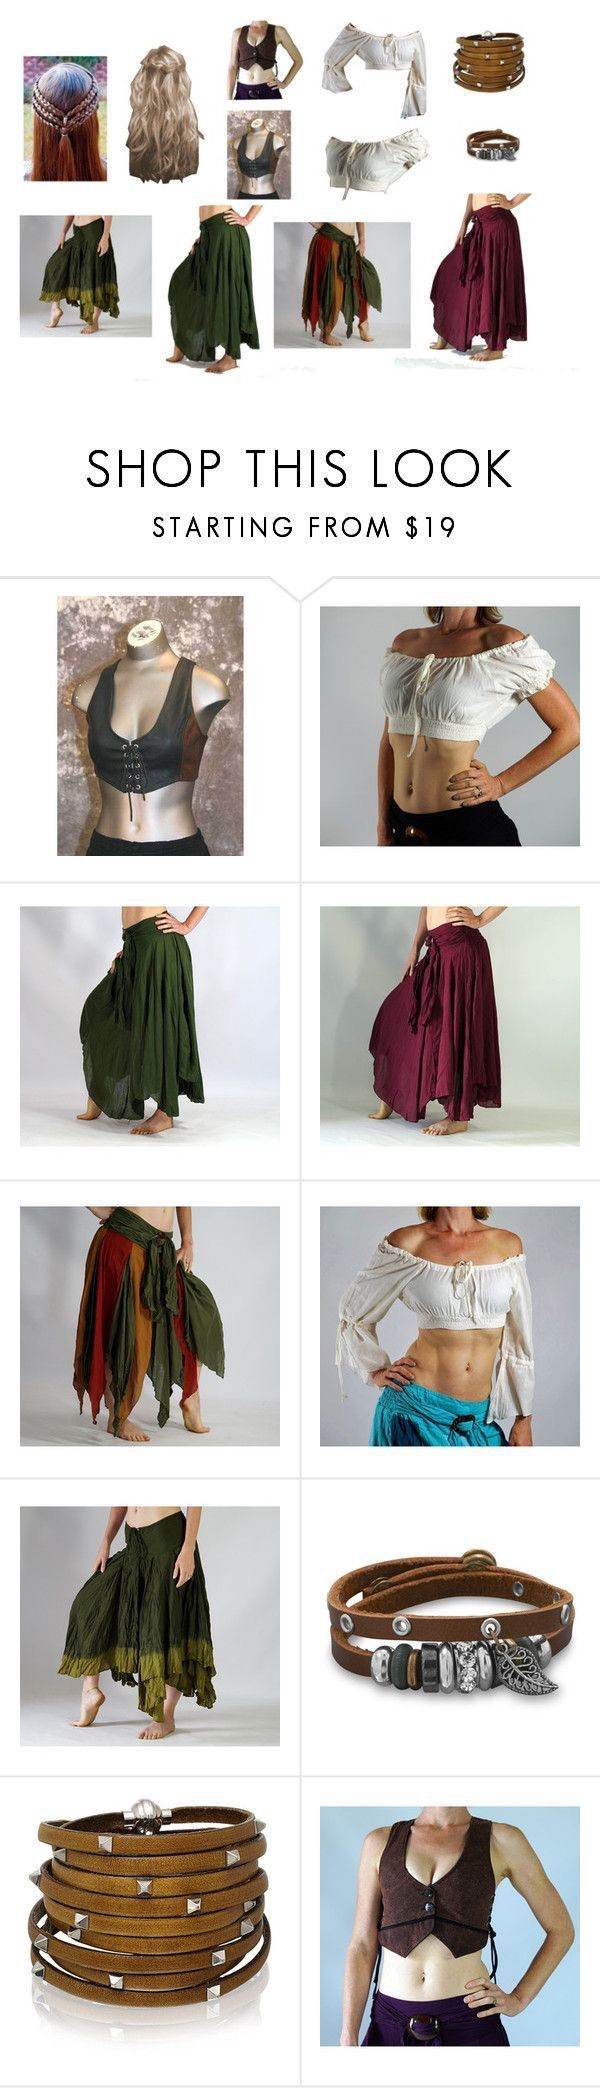 Best gypsy images on pinterest belly dance dance clothing and